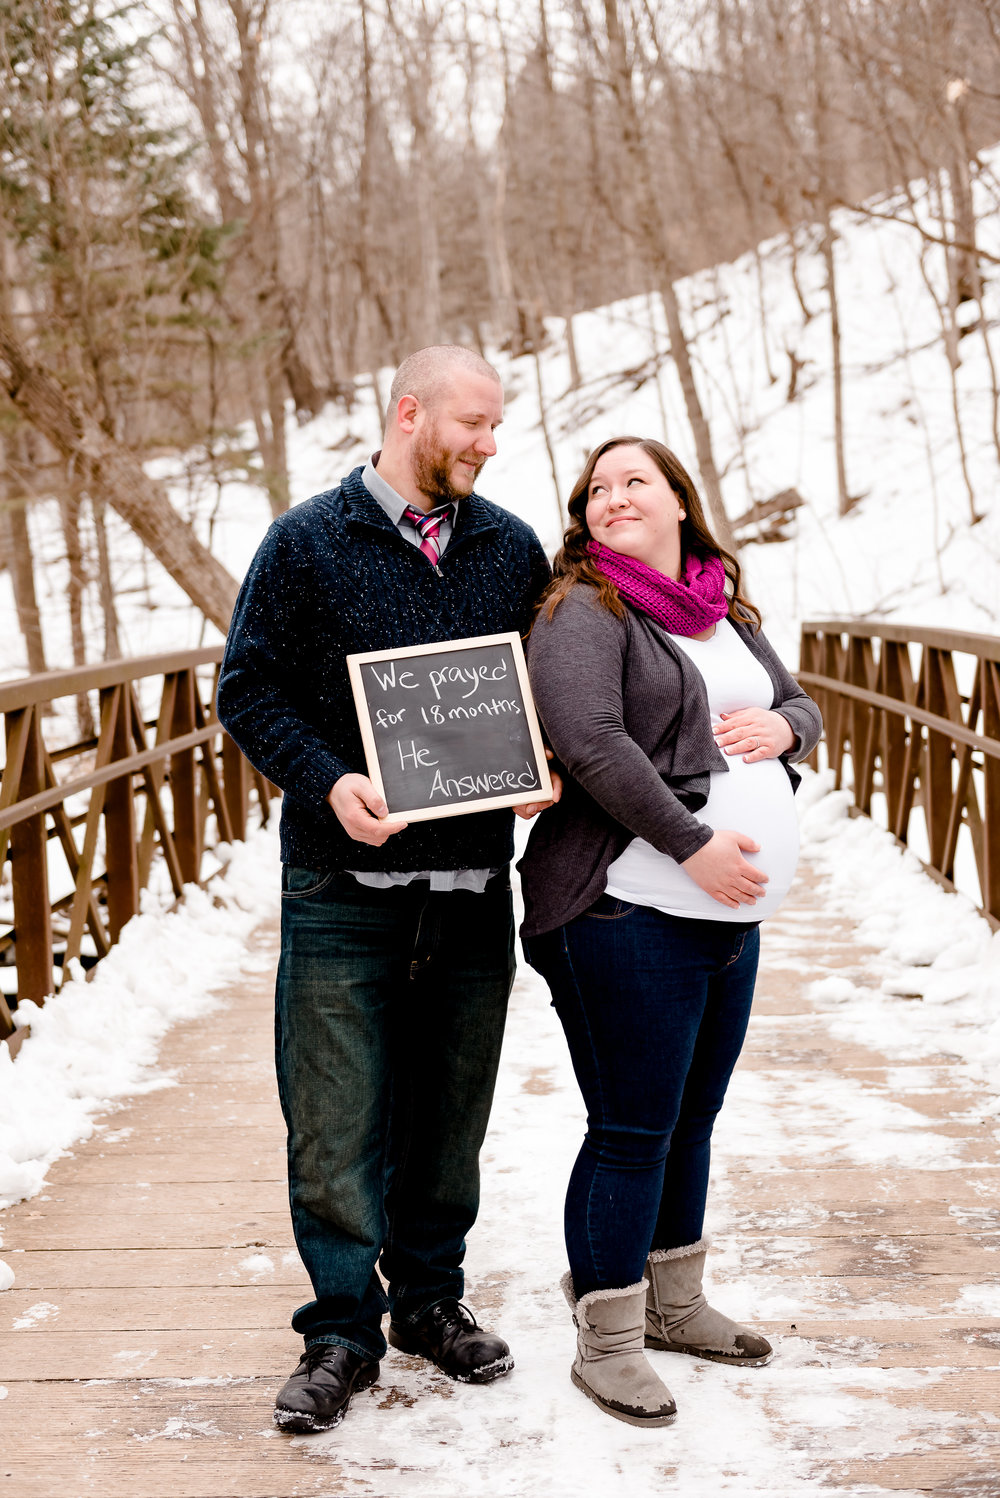 We prayed He answered maternity photo ideas - winter pregnancy photos by Laura Robinson Photography